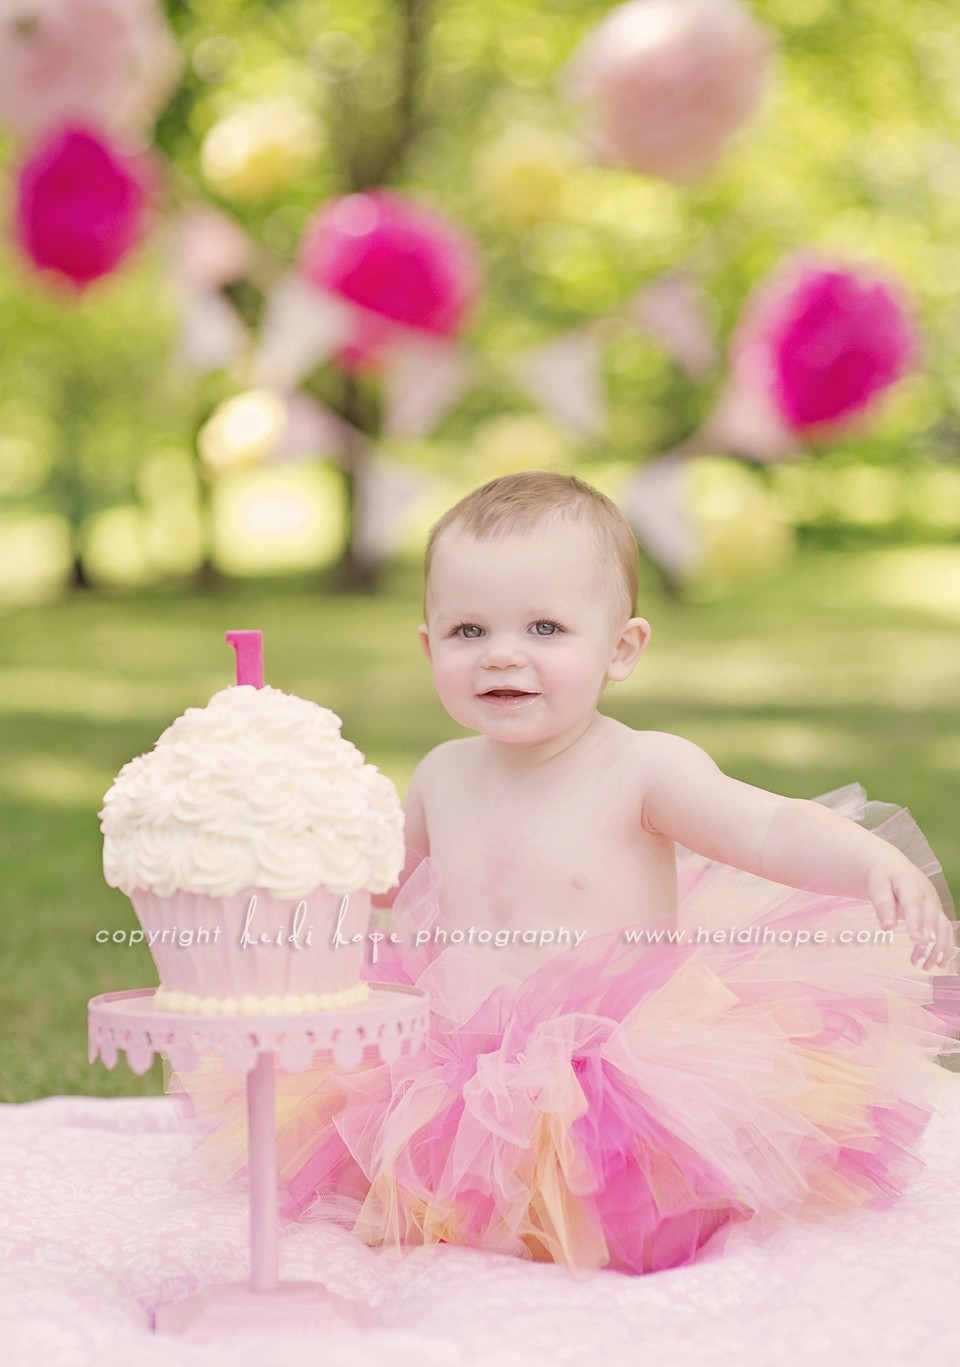 Birthday Theme Ideas For 1 Year Old Baby Girl Image Inspiration of